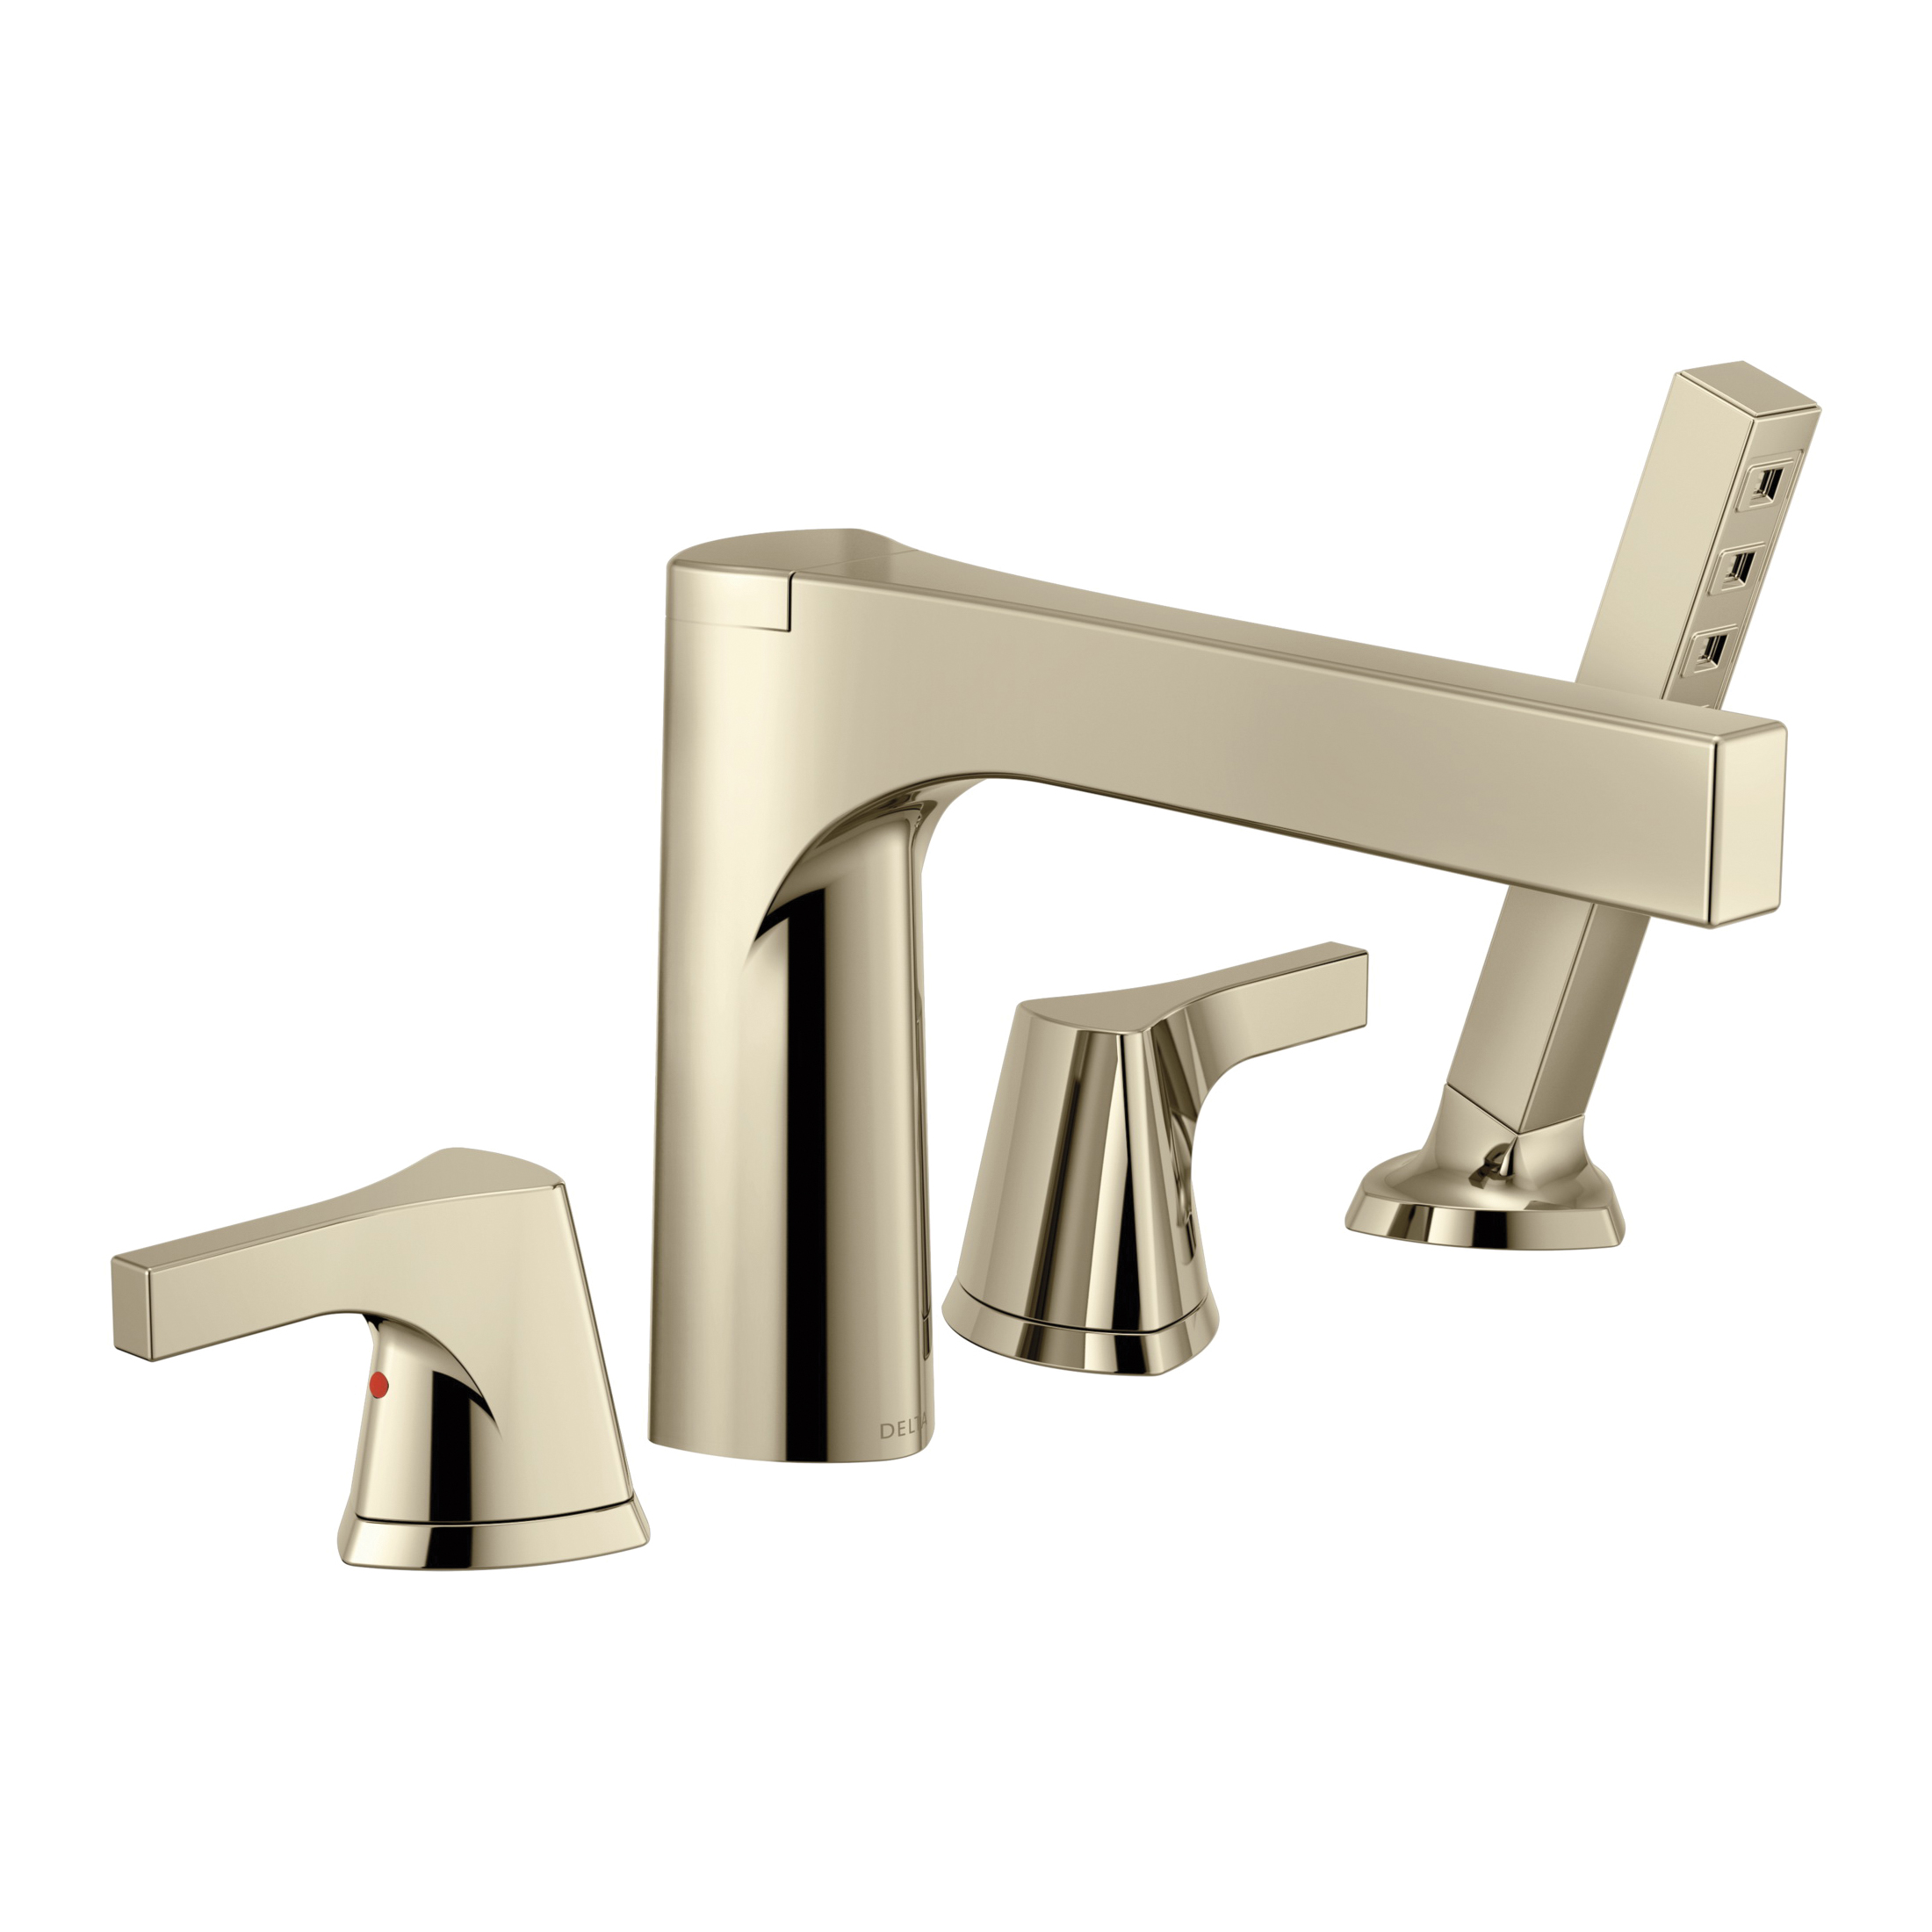 DELTA® T4774-PN Roman Tub Trim, Zura™, 2 gpm, 11 to 16 in Center, Polished Nickel, 2 Handles, Hand Shower Yes/No: Yes, Domestic